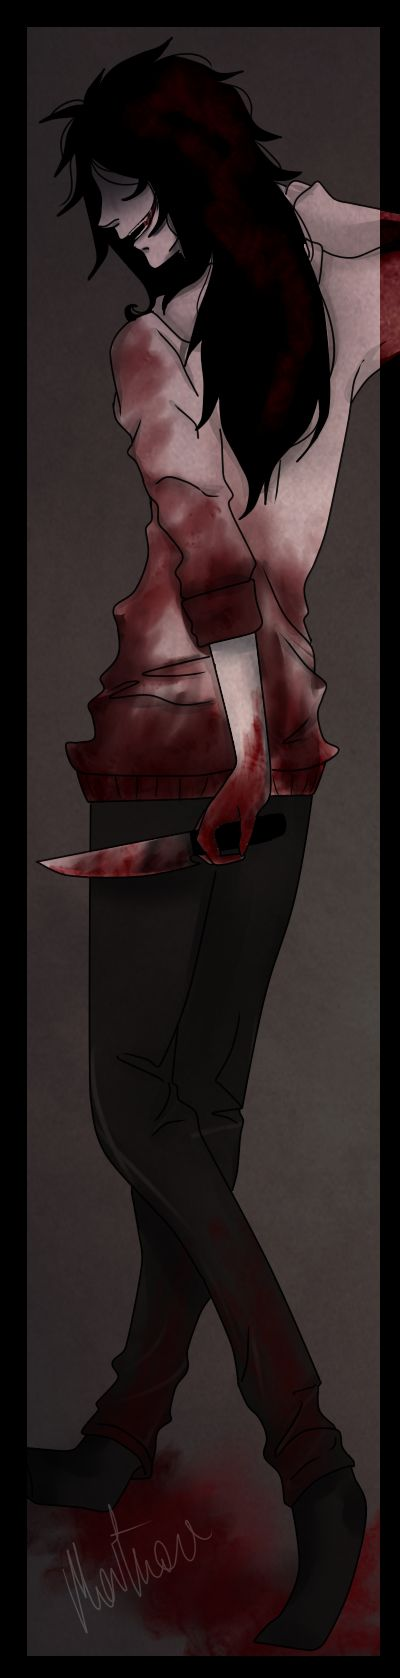 Jeff The Killer---- mostly everyone draws him to be so dashing when in reality (creepypasta reality) hes supposed to be an ugly deformed creature